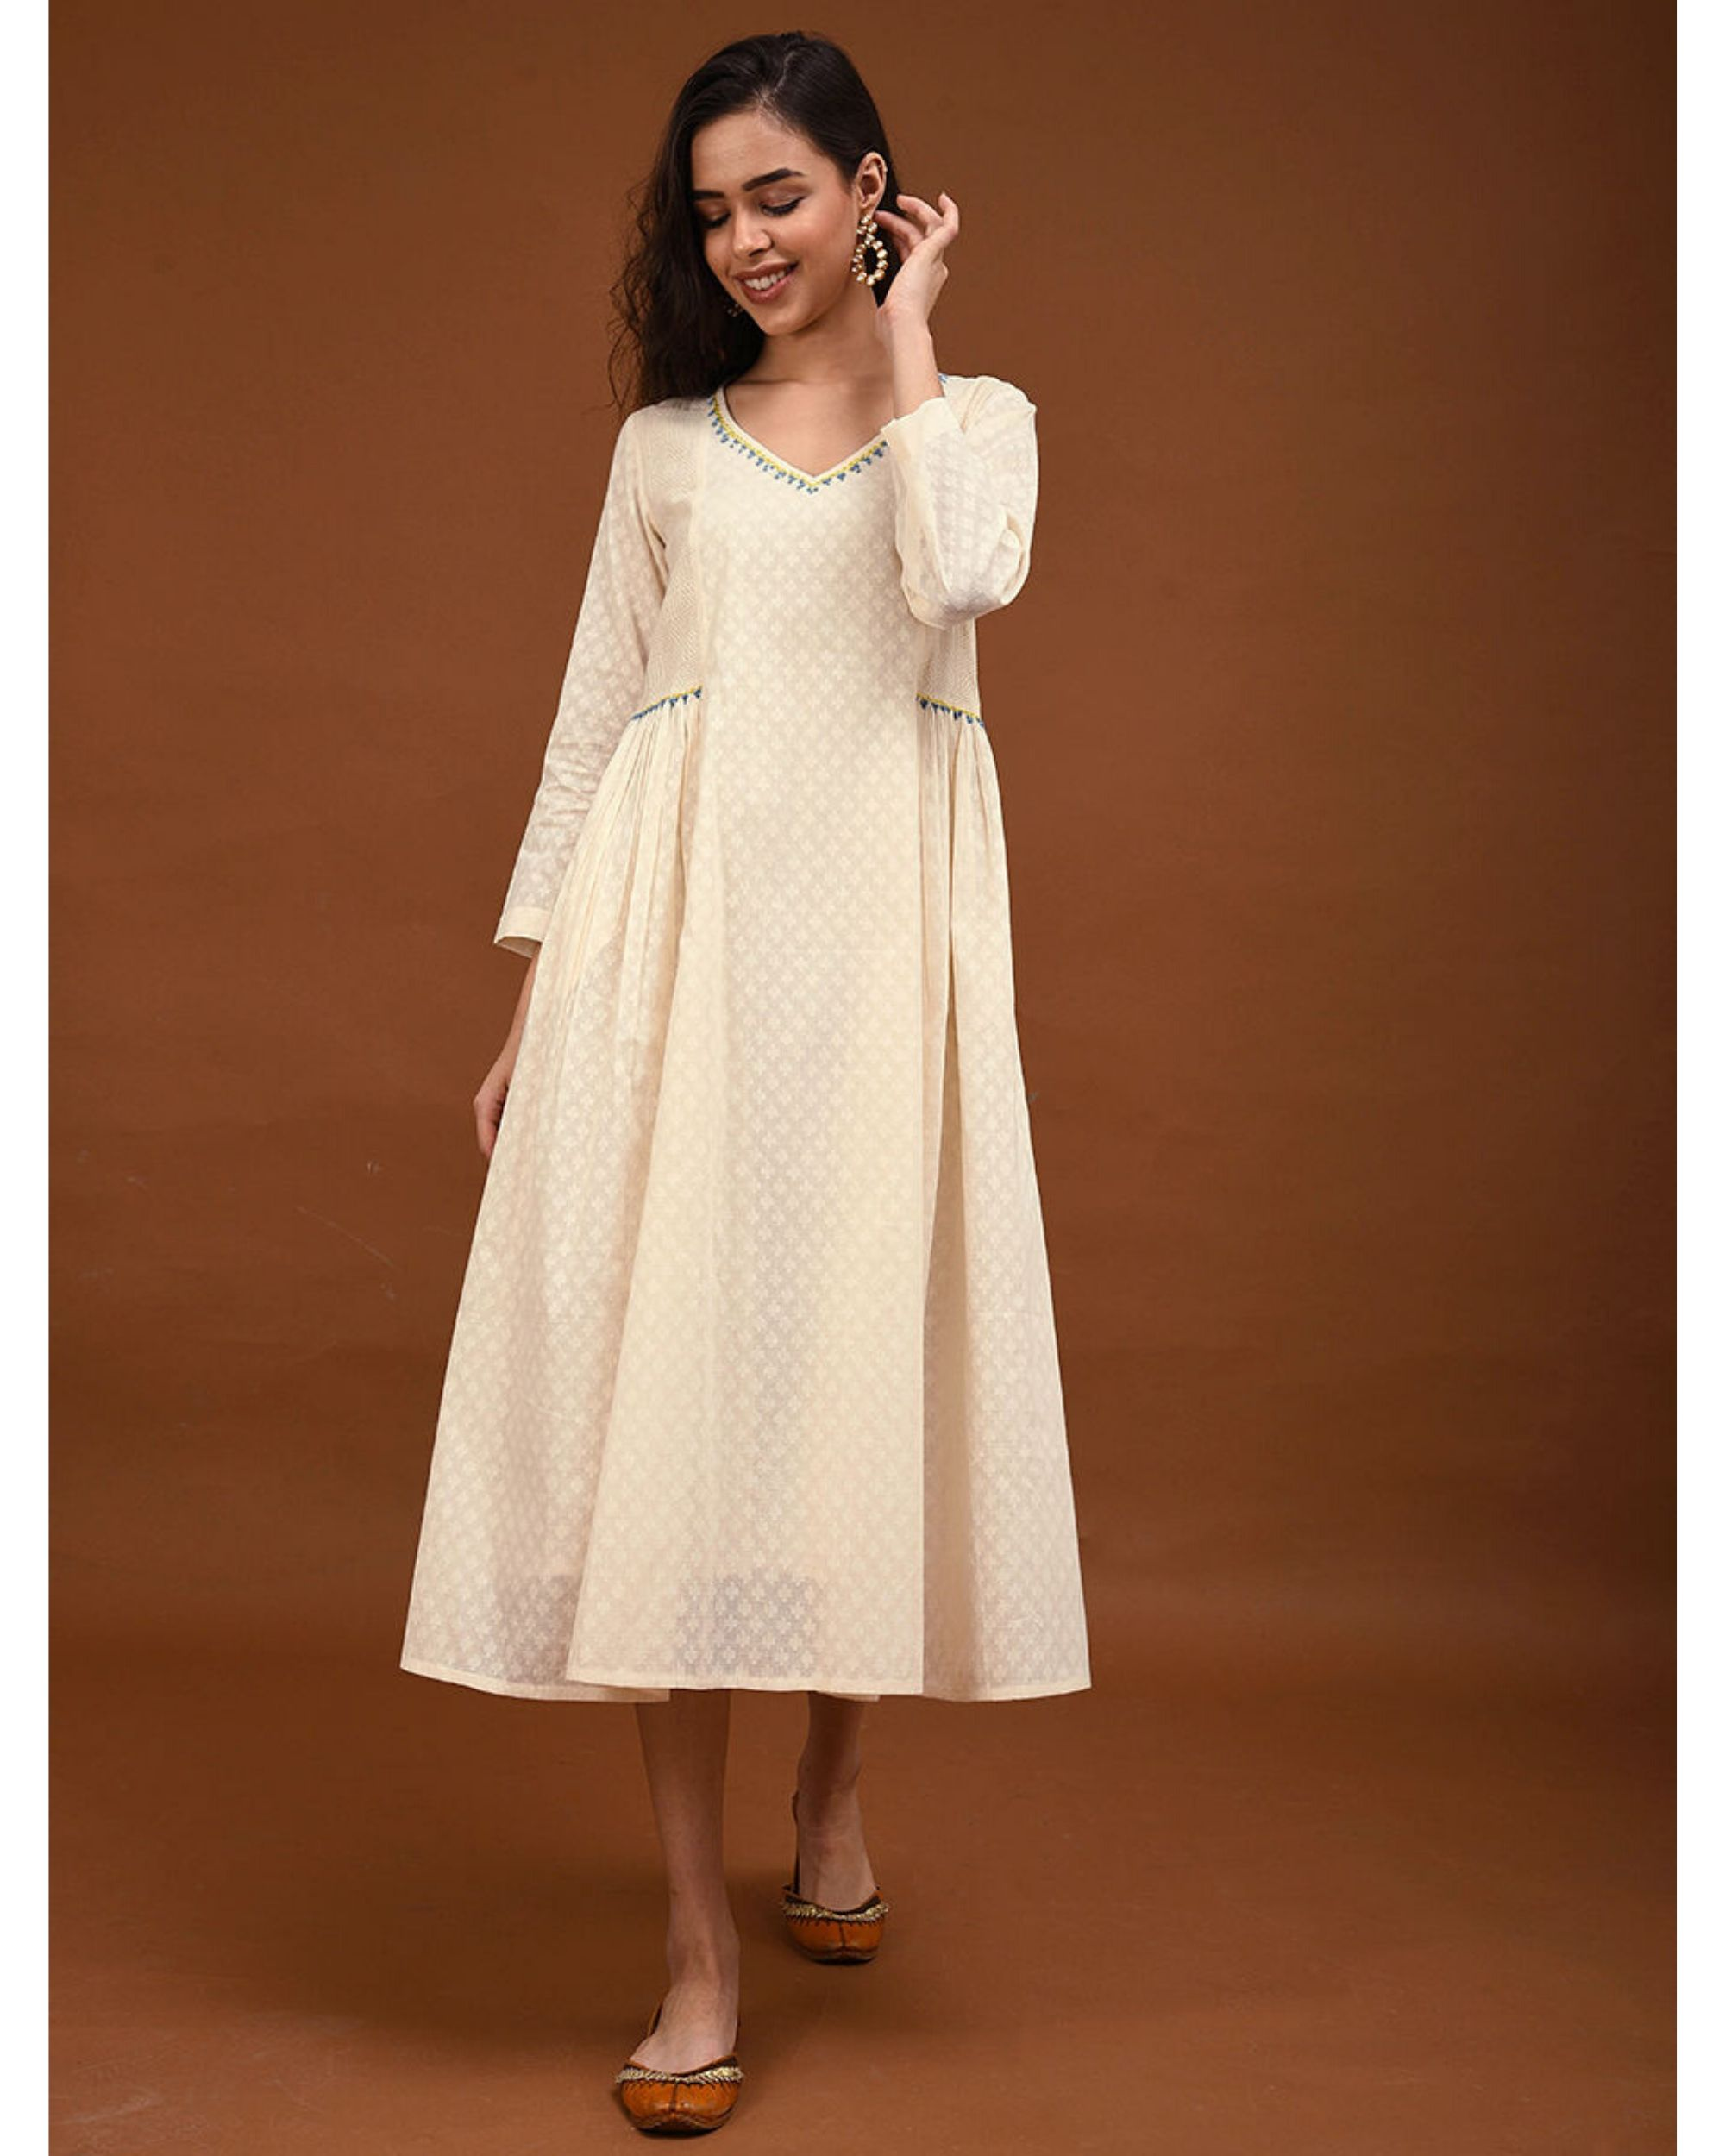 Off white hand embroidered gathers dress